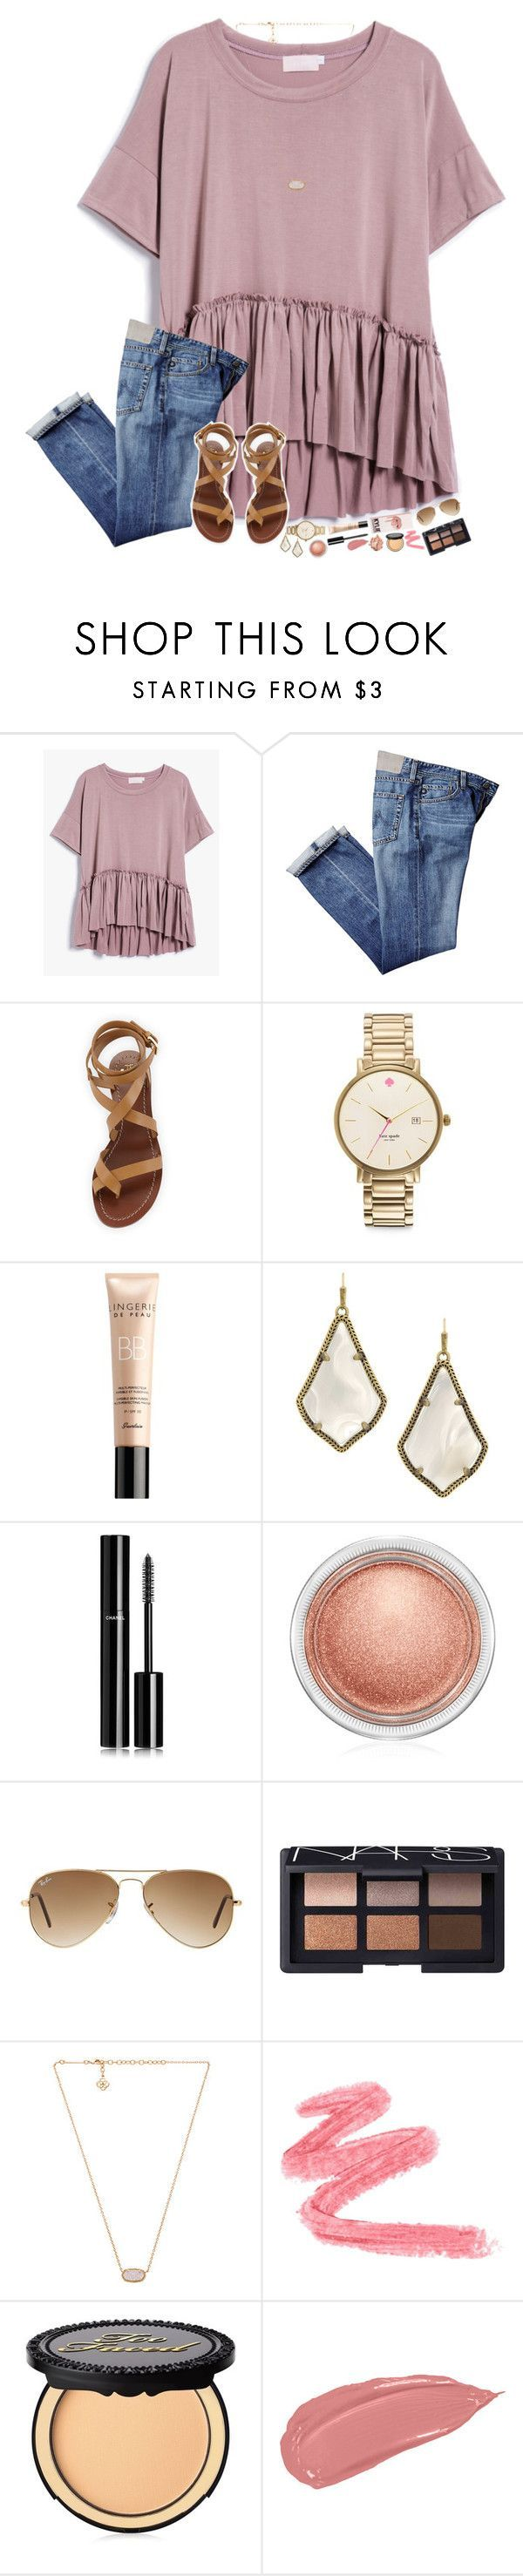 """hey, let's party like we're on vacation!"" by hopemarlee ❤ liked on Polyvore featuring Tory Burch, Kate Spade, Guerlain, Kendra Scott, Chanel, MAC Cosmetics, Ray-Ban, NARS Cosmetics, Too Faced Cosmetics and Stila"